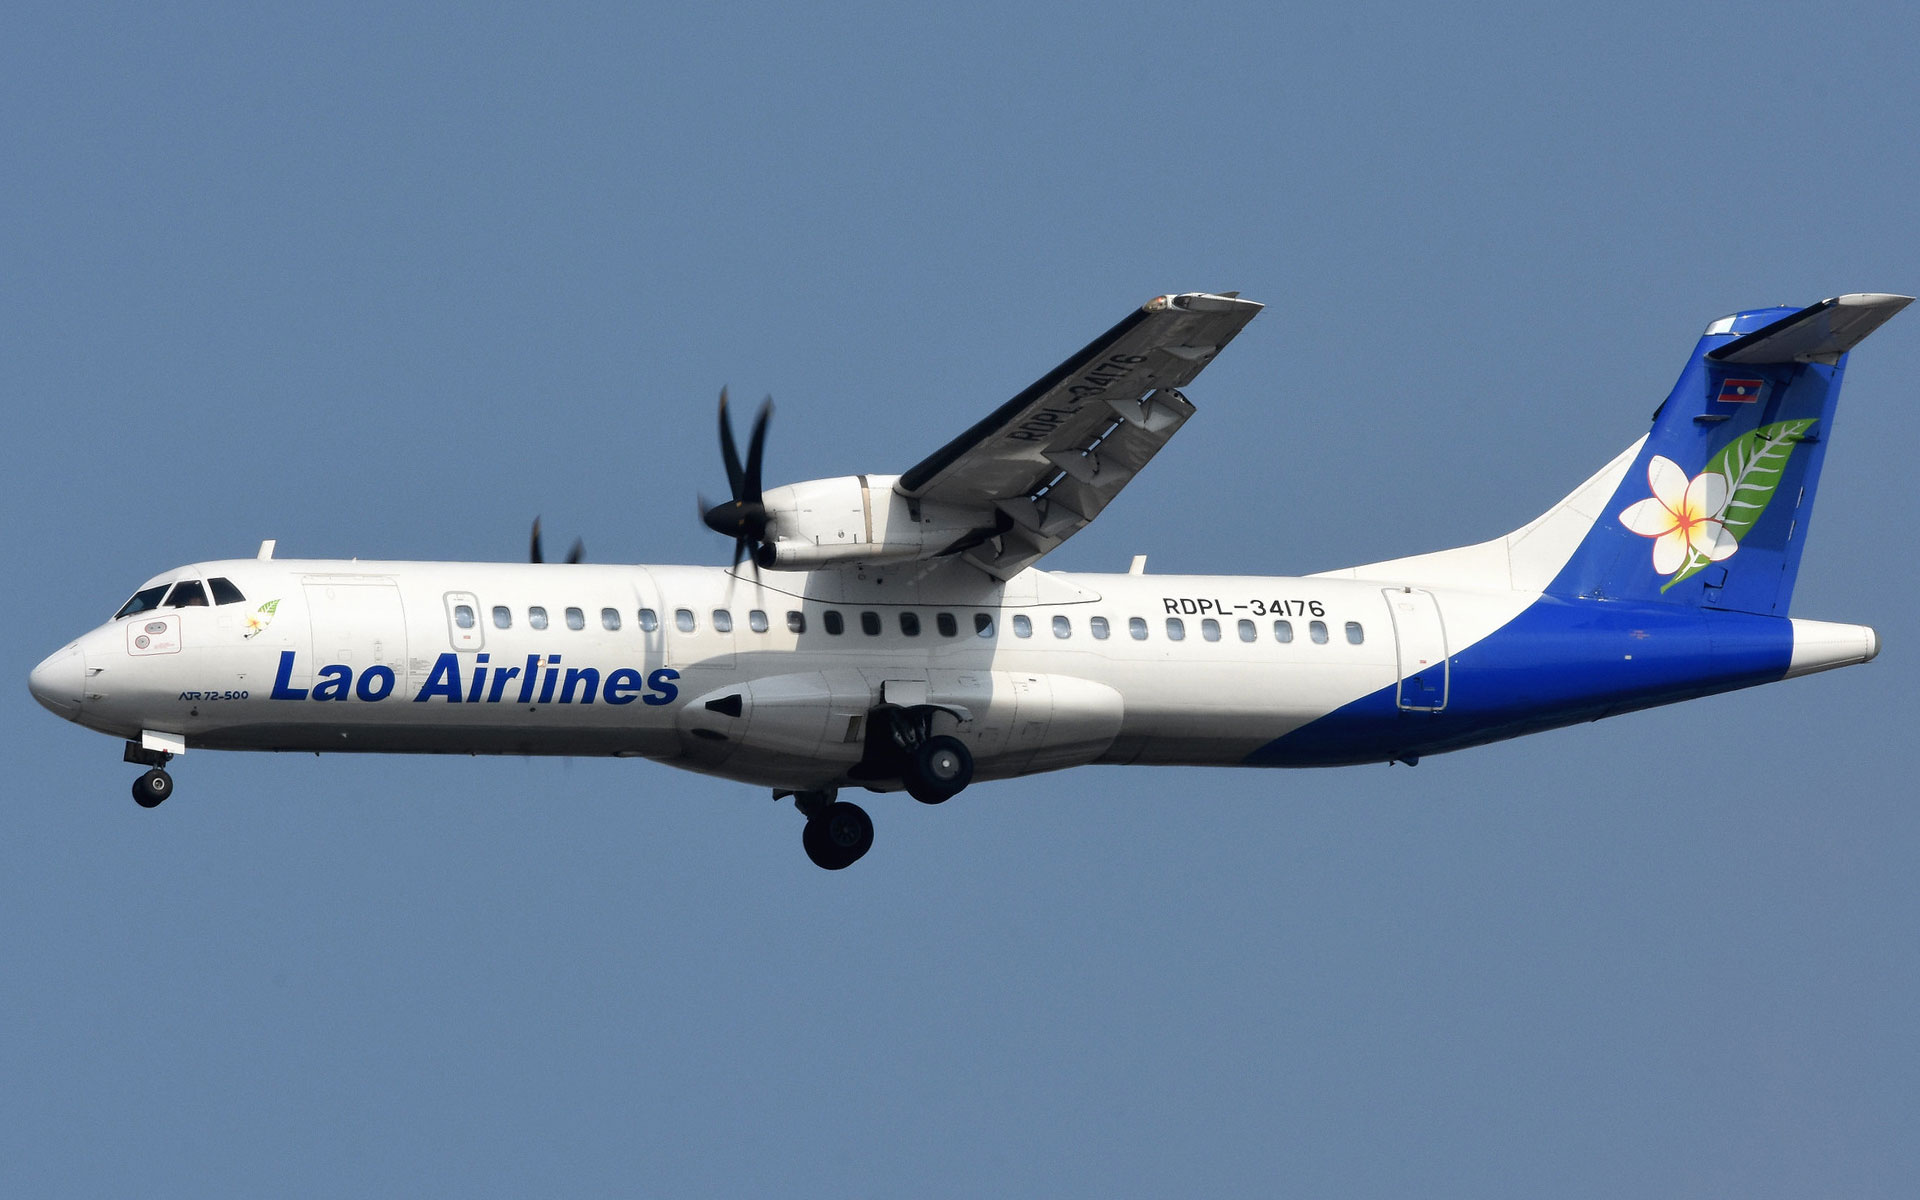 ATR72-500 of Lao Airlines